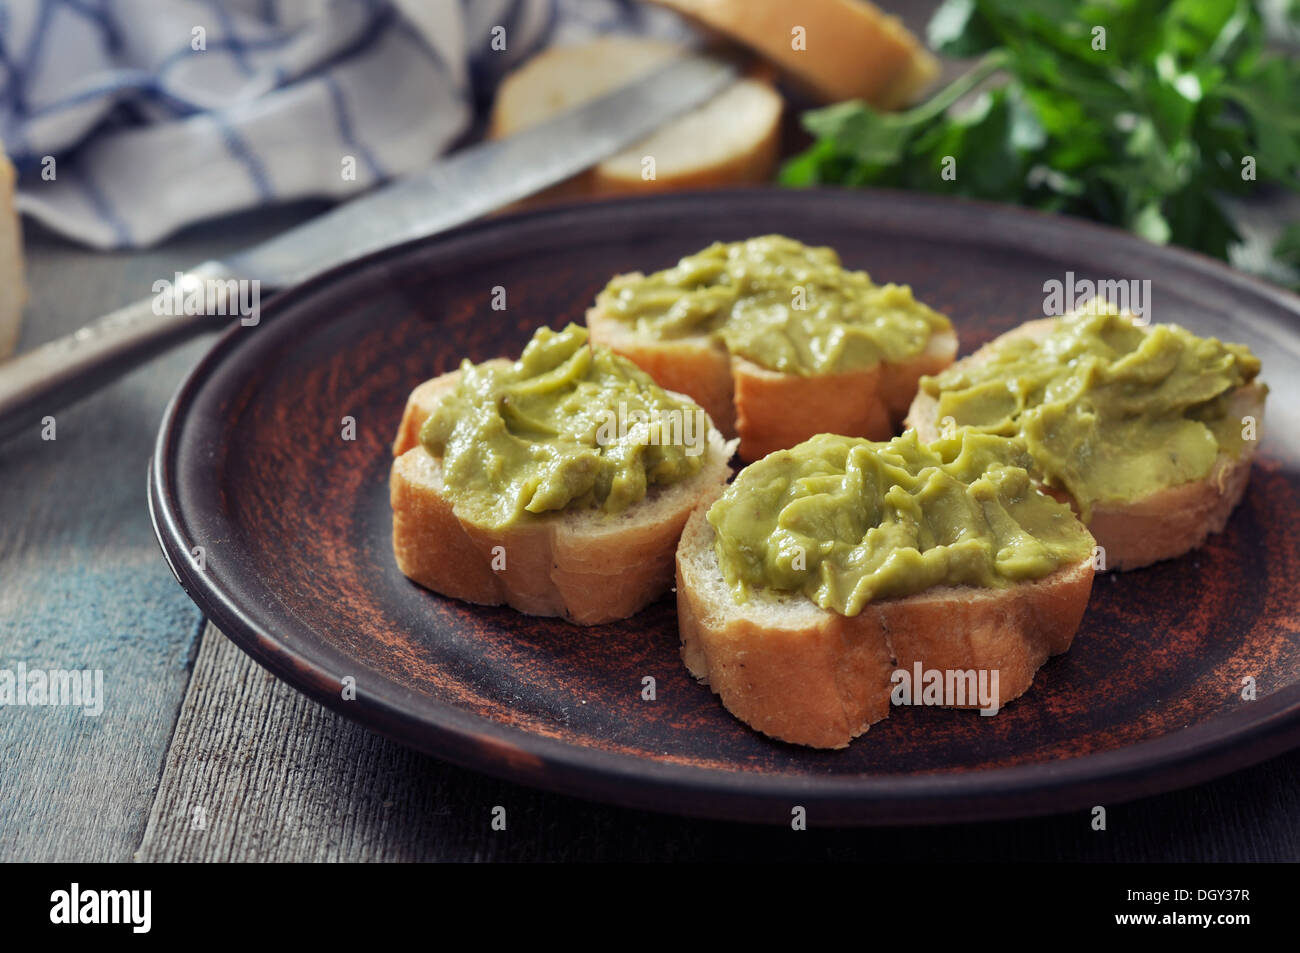 Delicious appetizer canapes of bread and guacamole served with parsley closeup - Stock Image